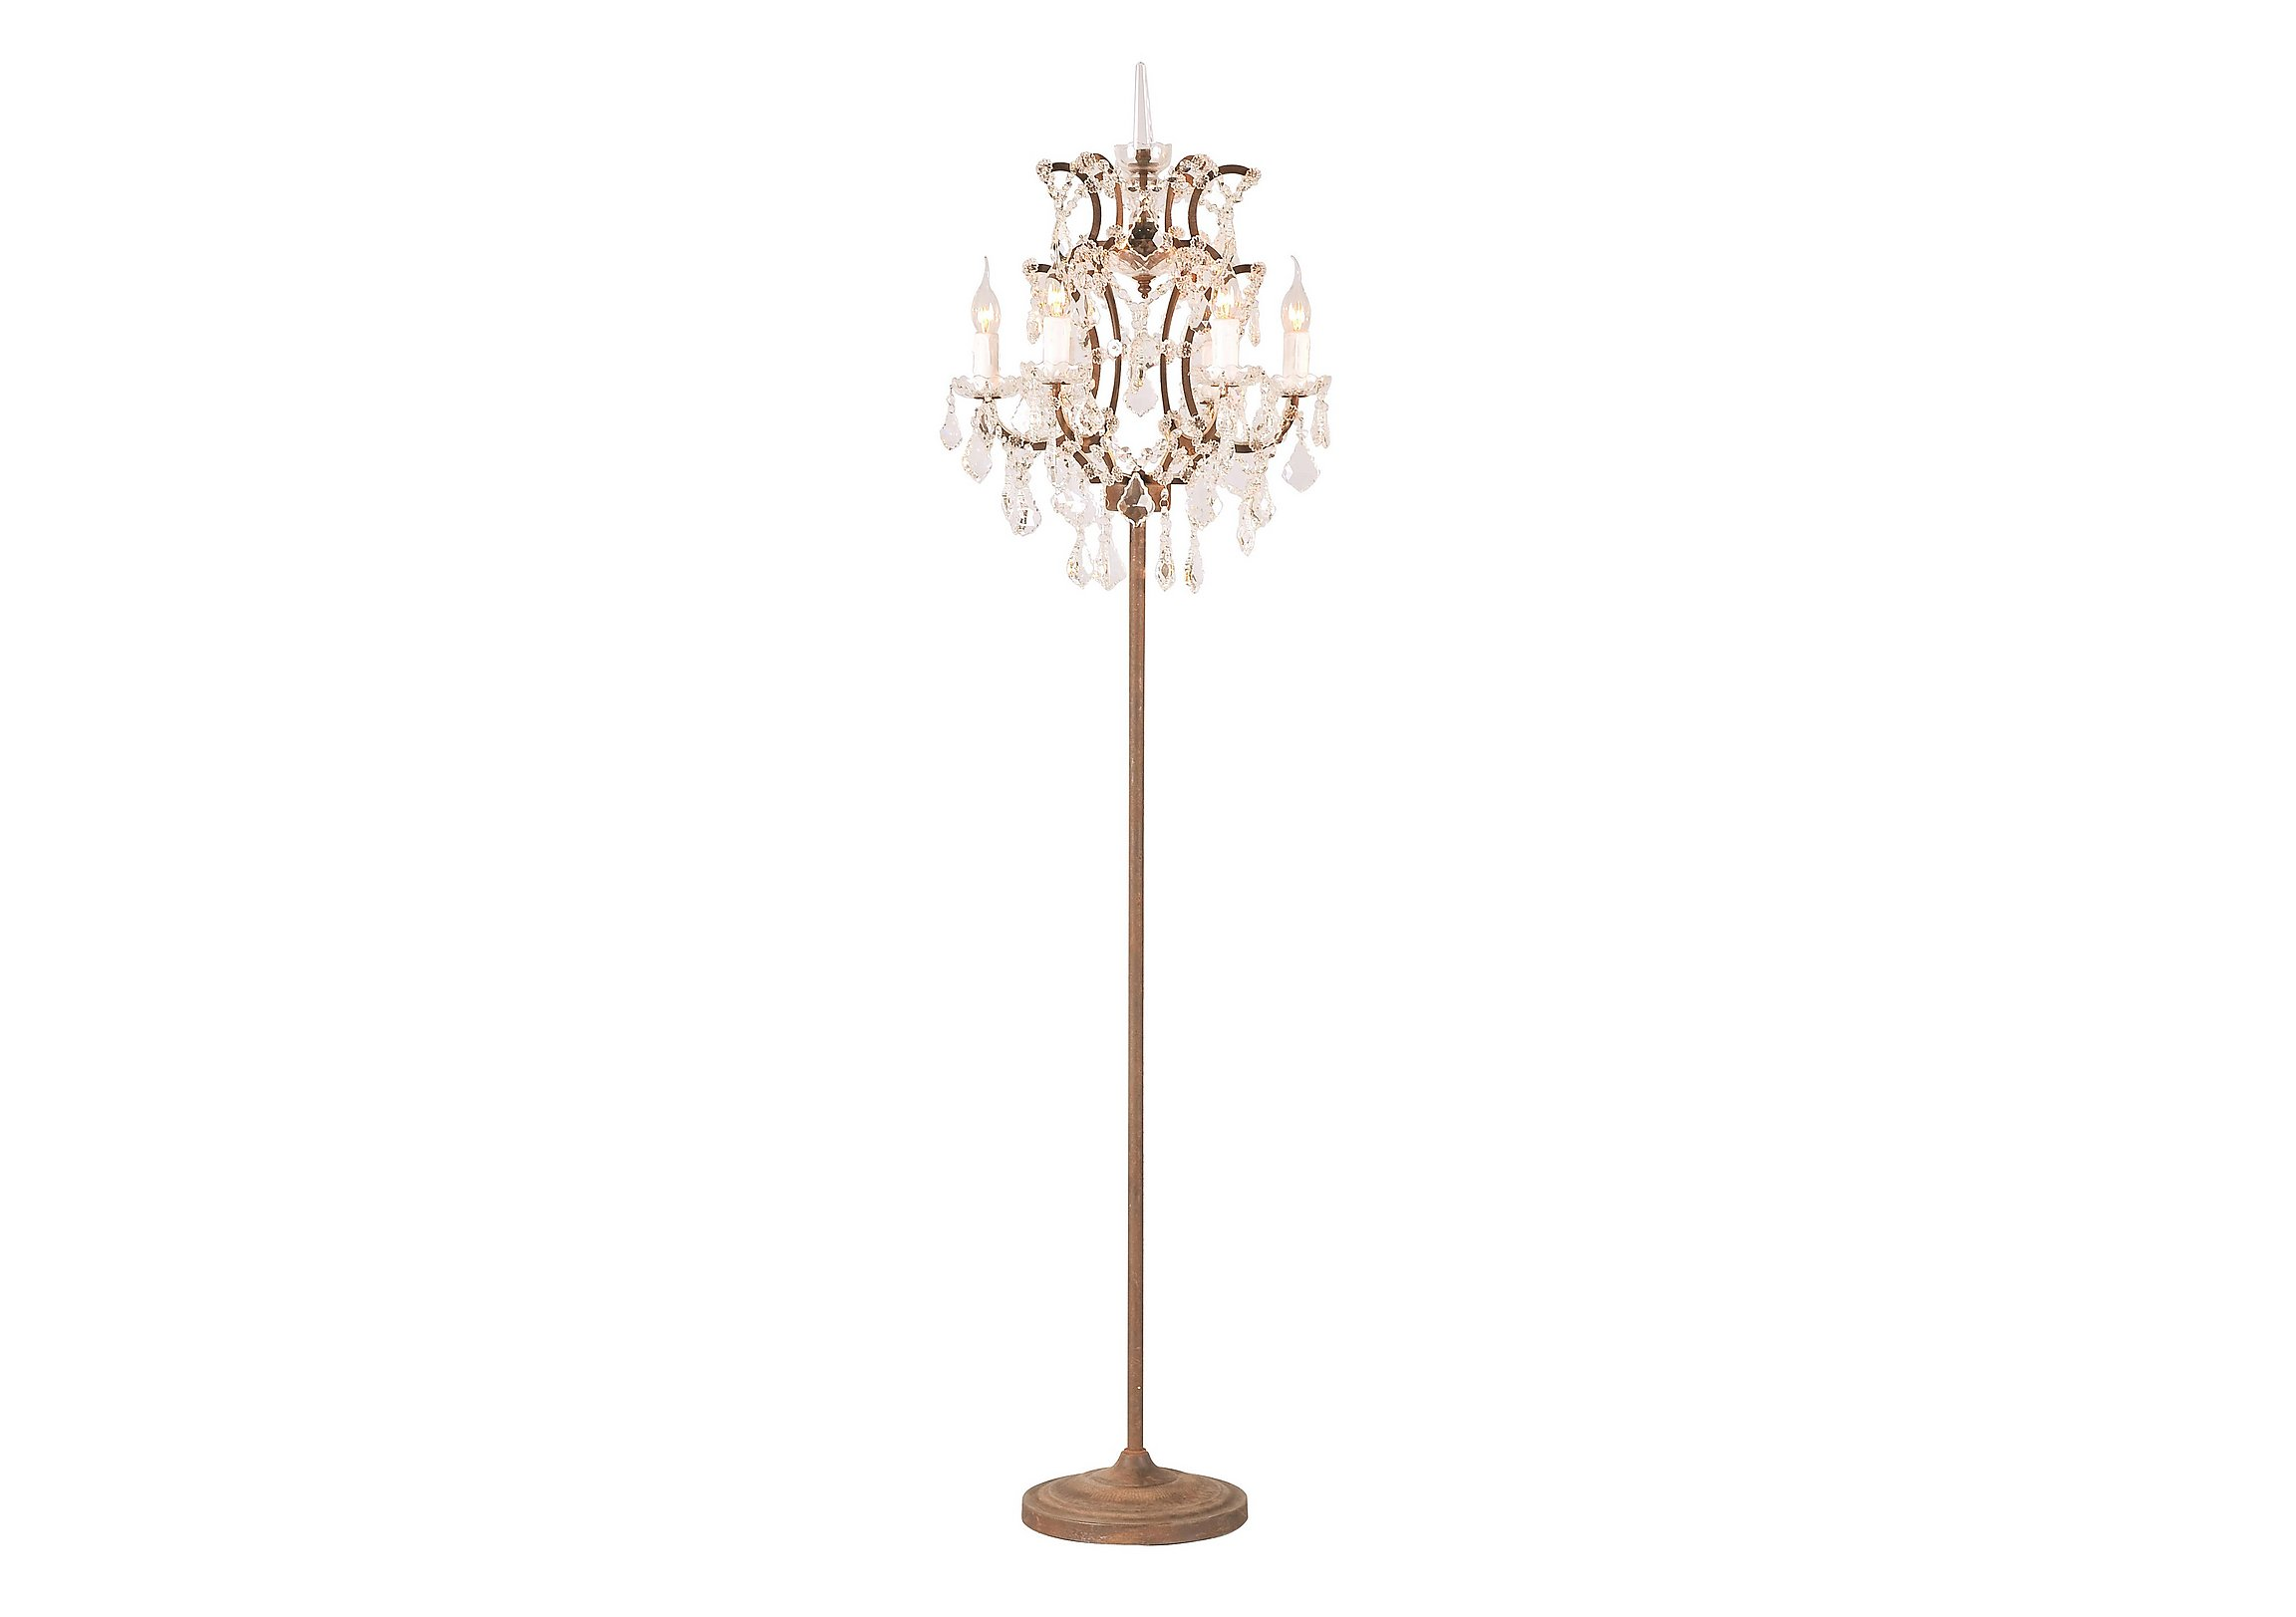 Shaftesbury chandelier floor lamp halo furniture village shaftesbury chandelier floor lamp loading images aloadofball Image collections